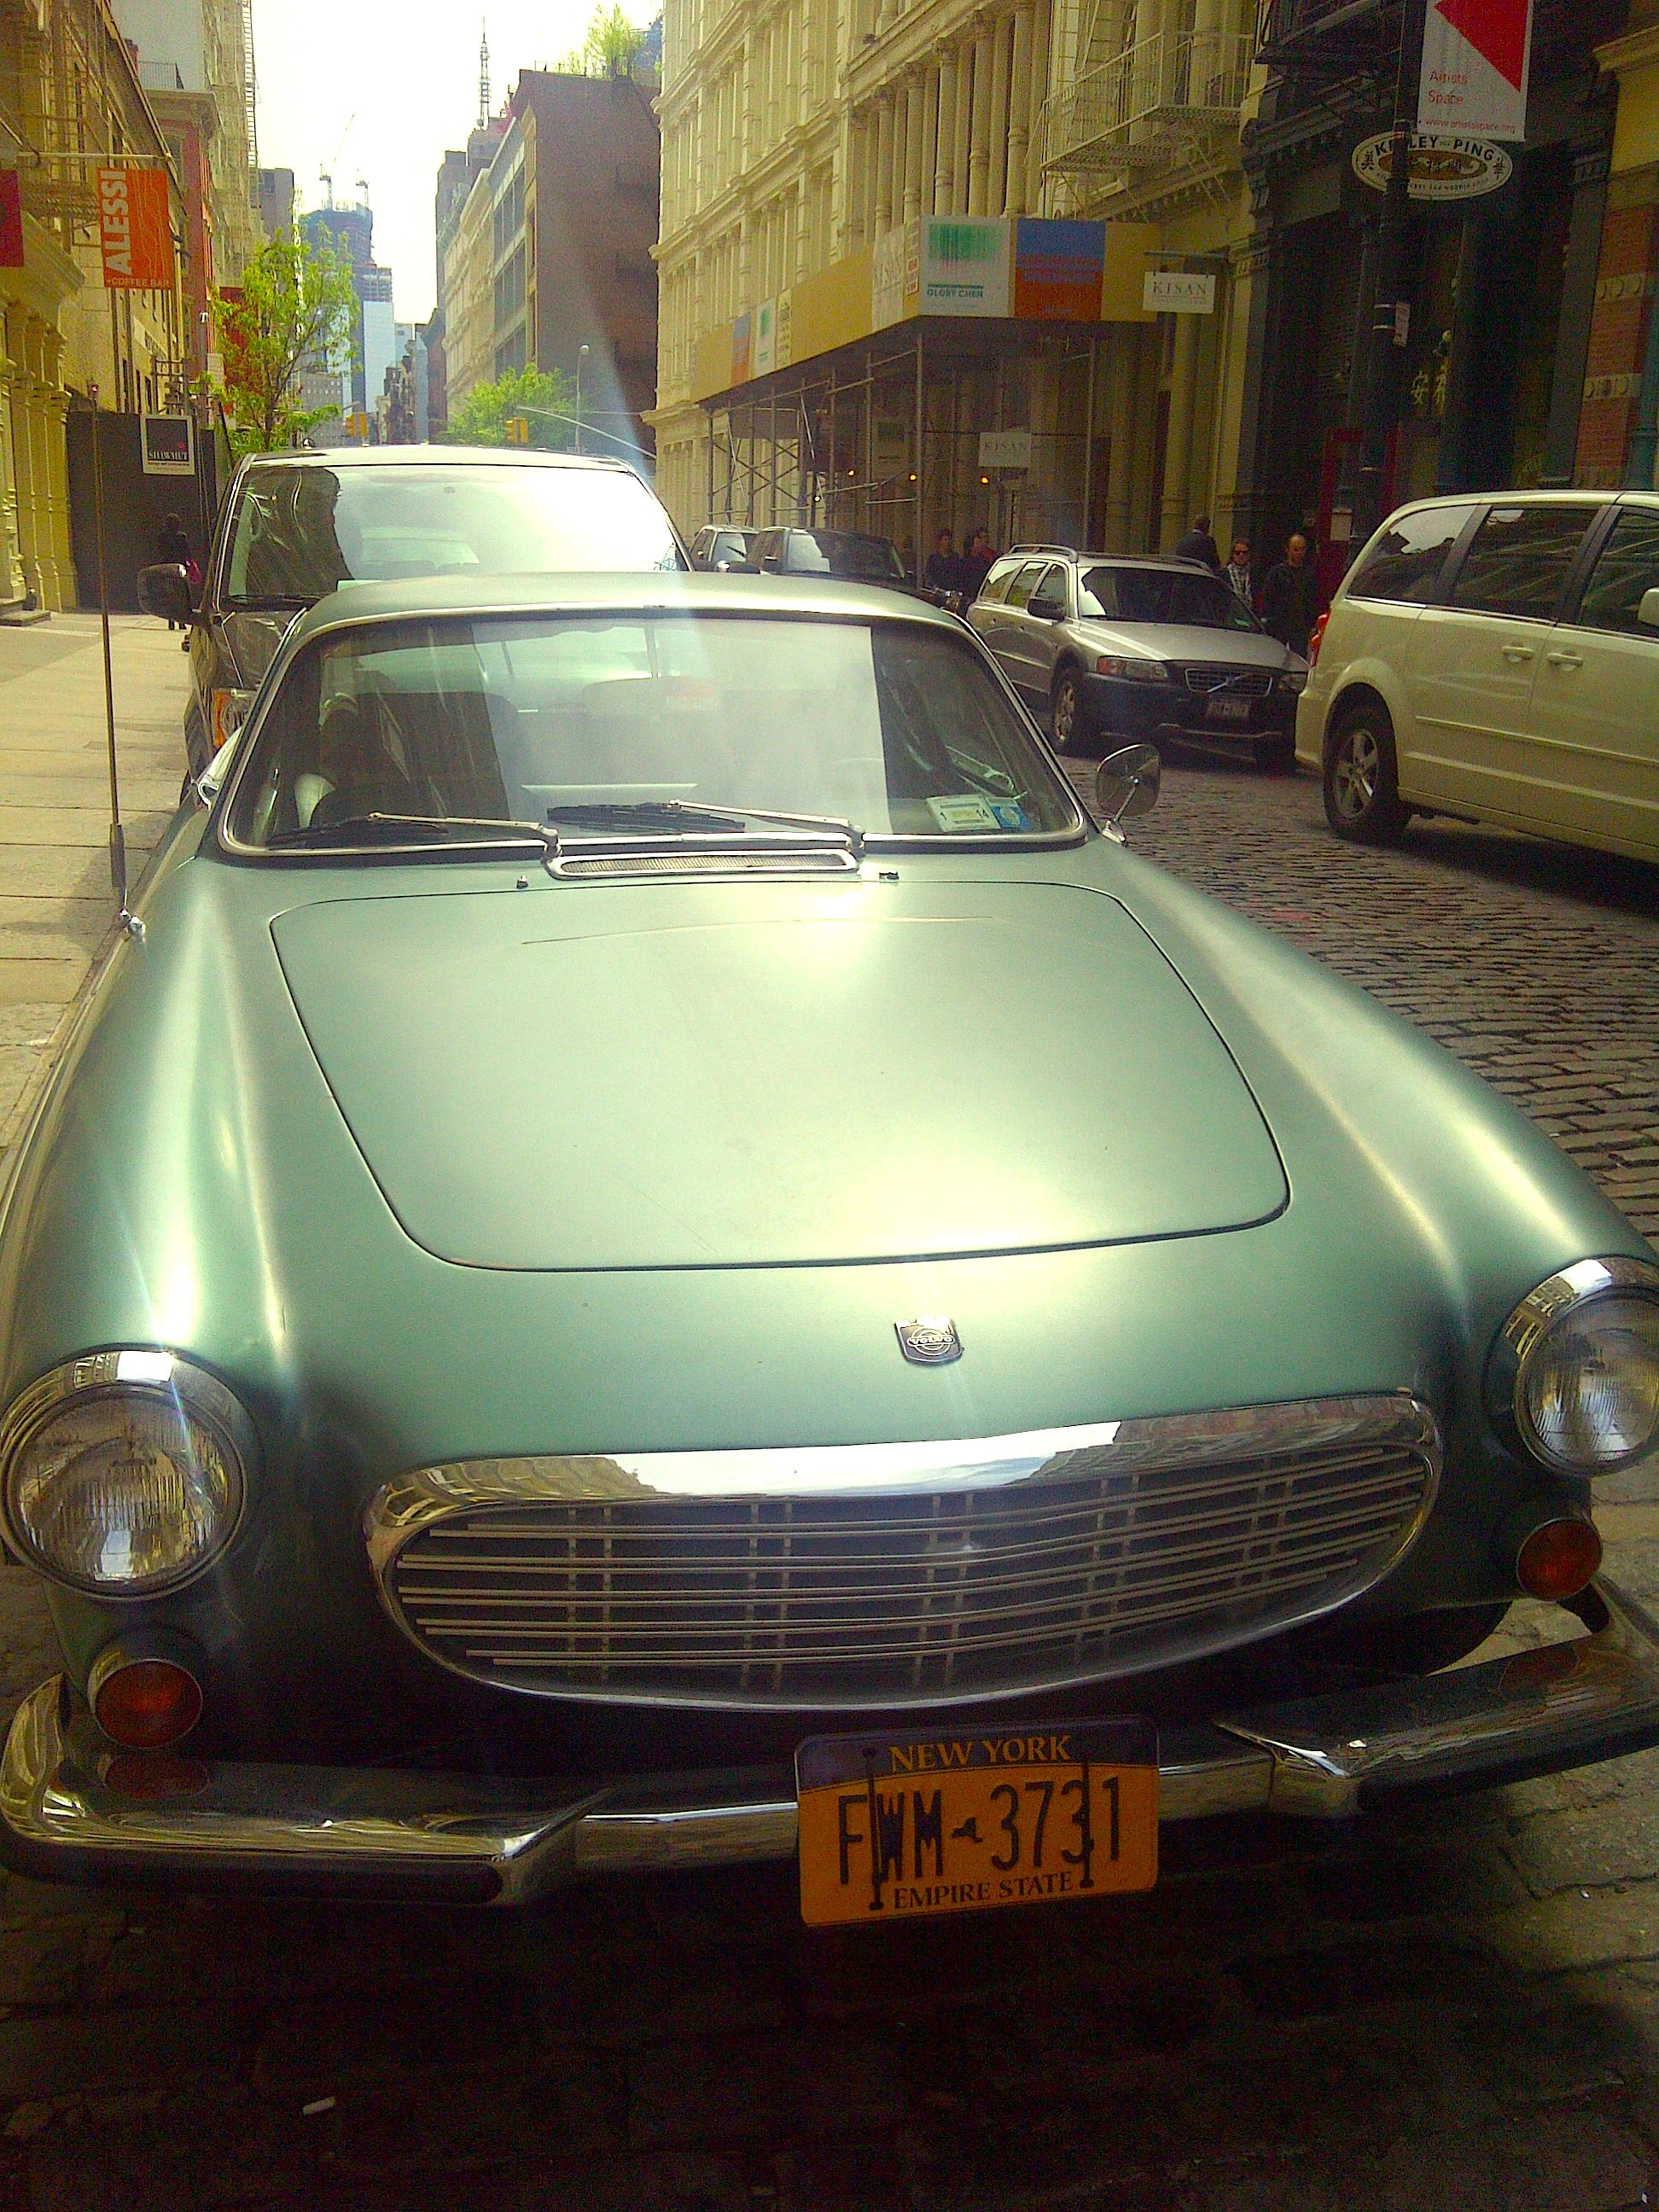 wiki commons volvo left nyc front file wikimedia